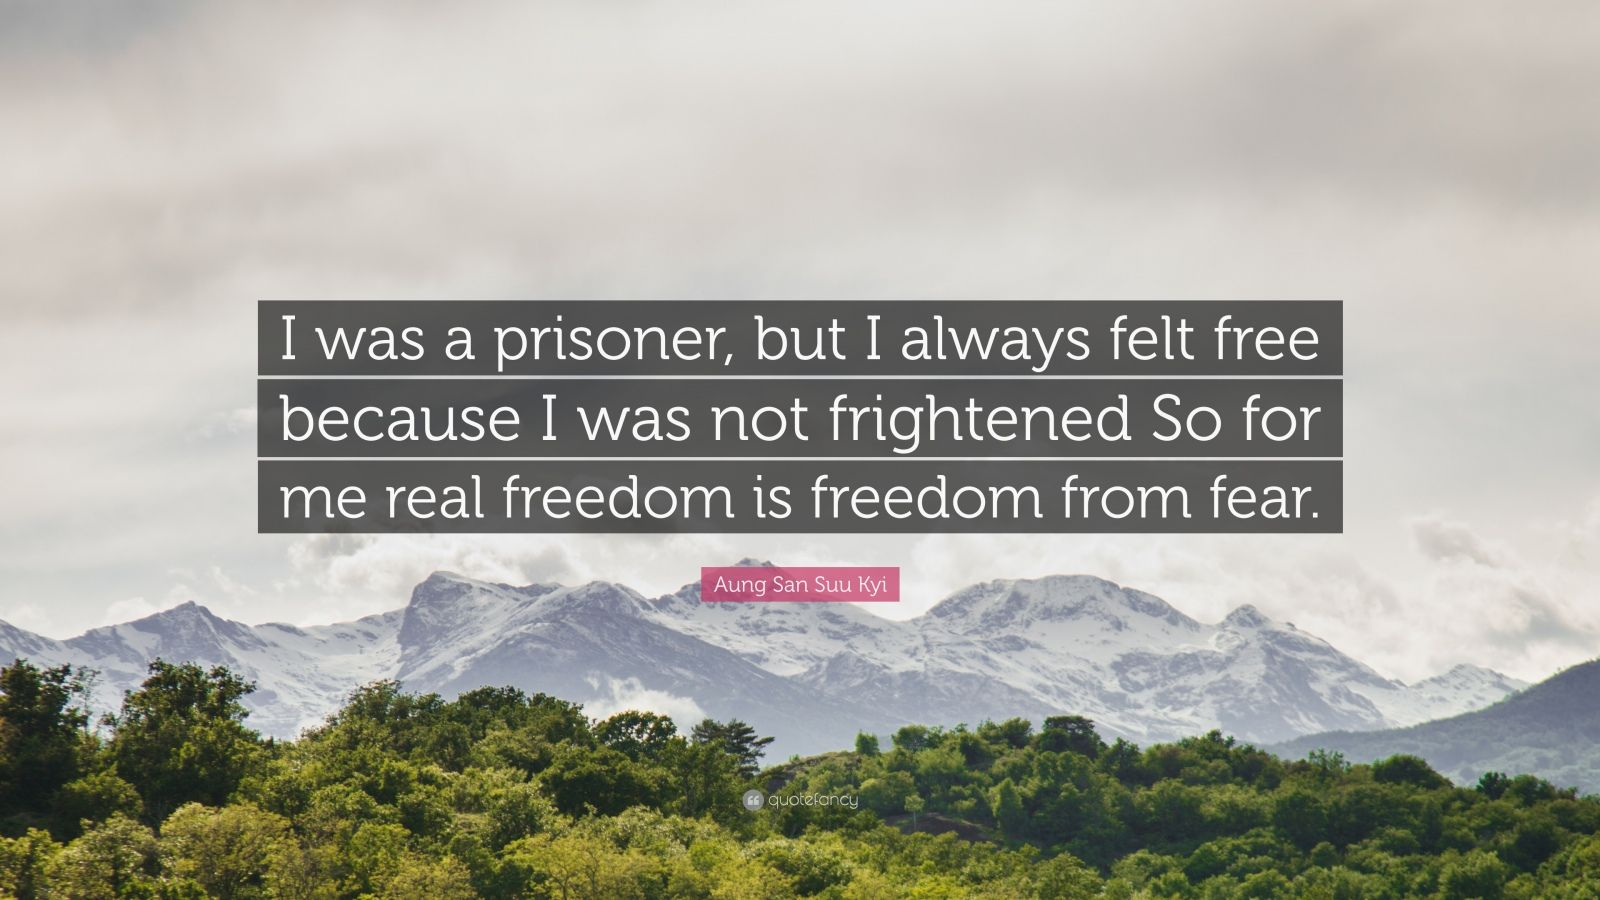 """Aung San Suu Kyi Quote: """"I was a prisoner, but I always felt free because I was not frightened So for me real freedom is freedom from fear."""""""